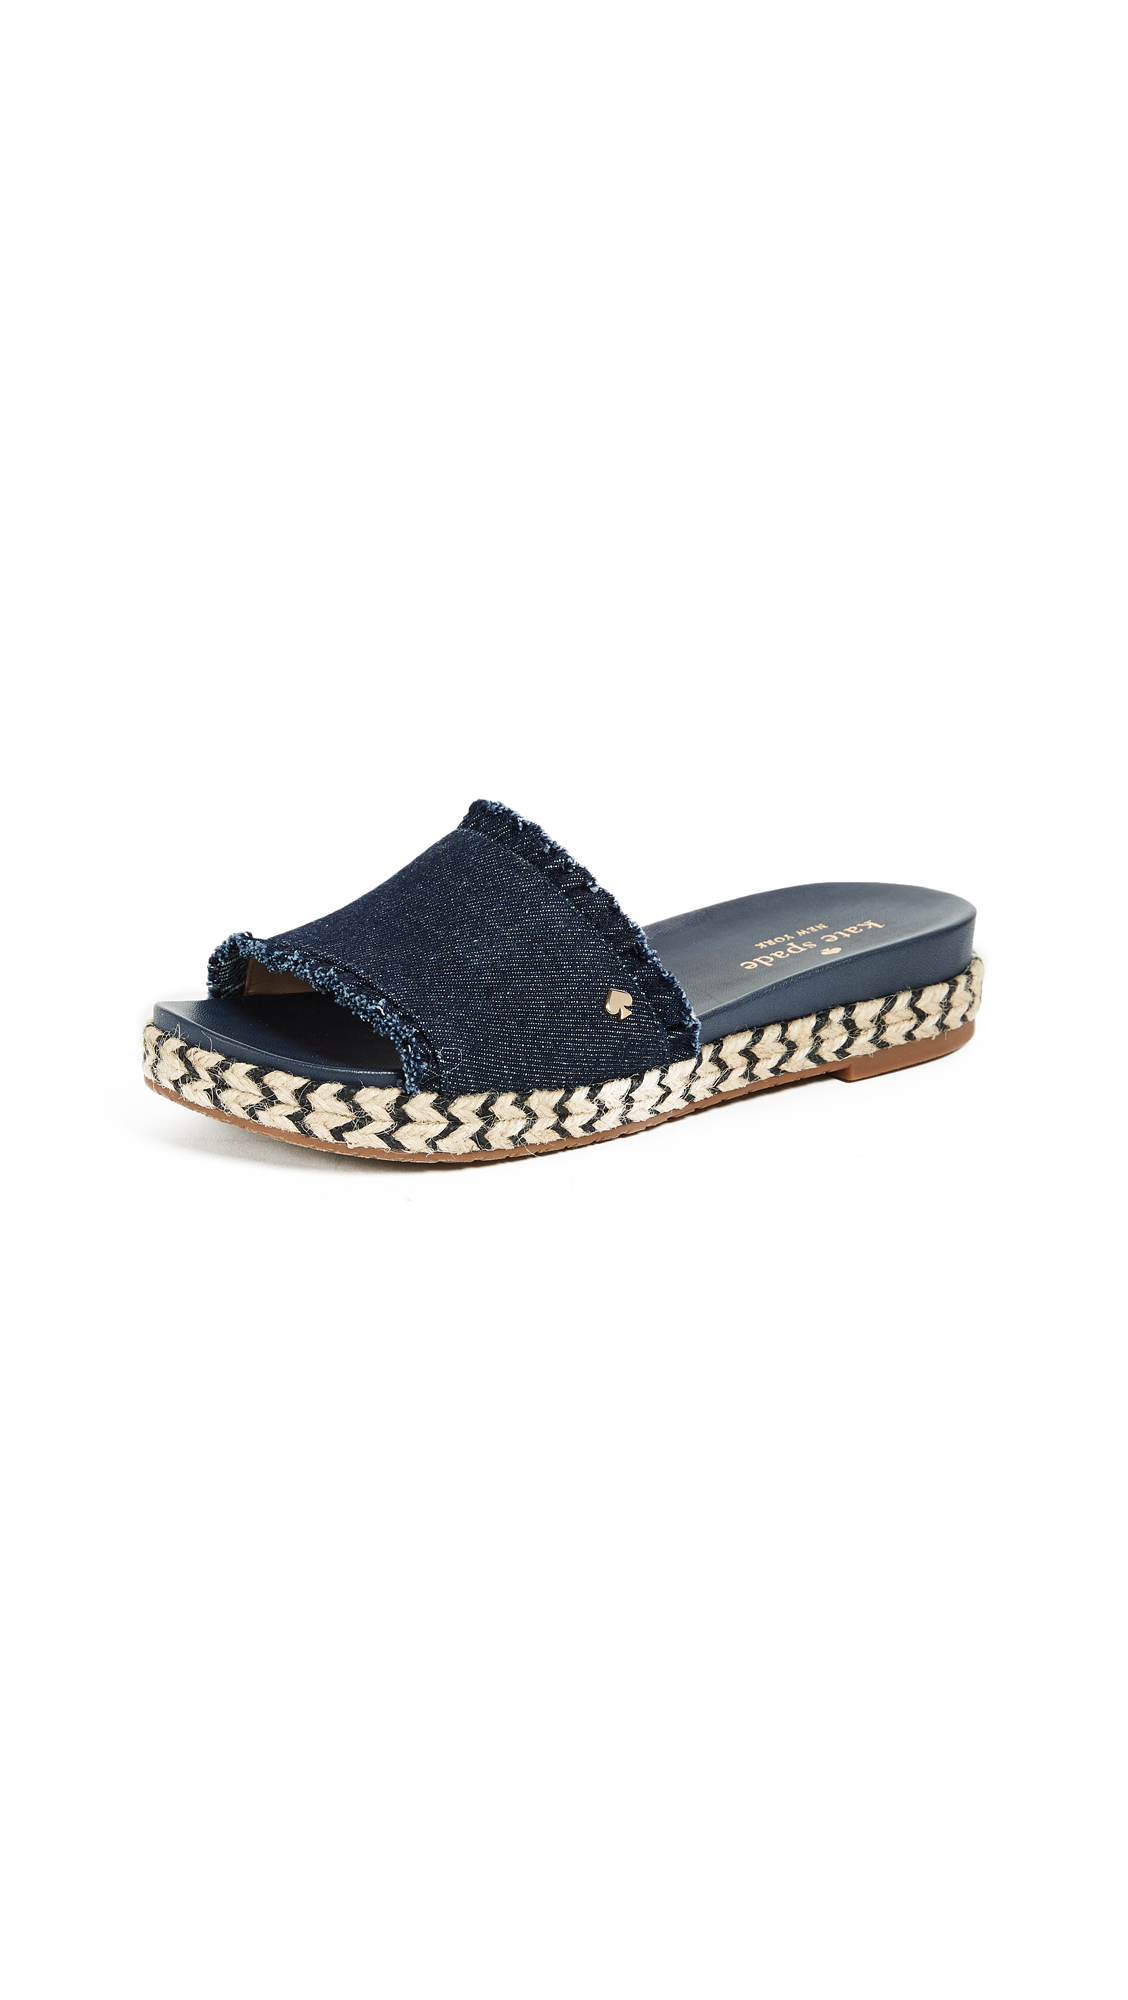 Kate Spade New York Zahara Slides - Indigo